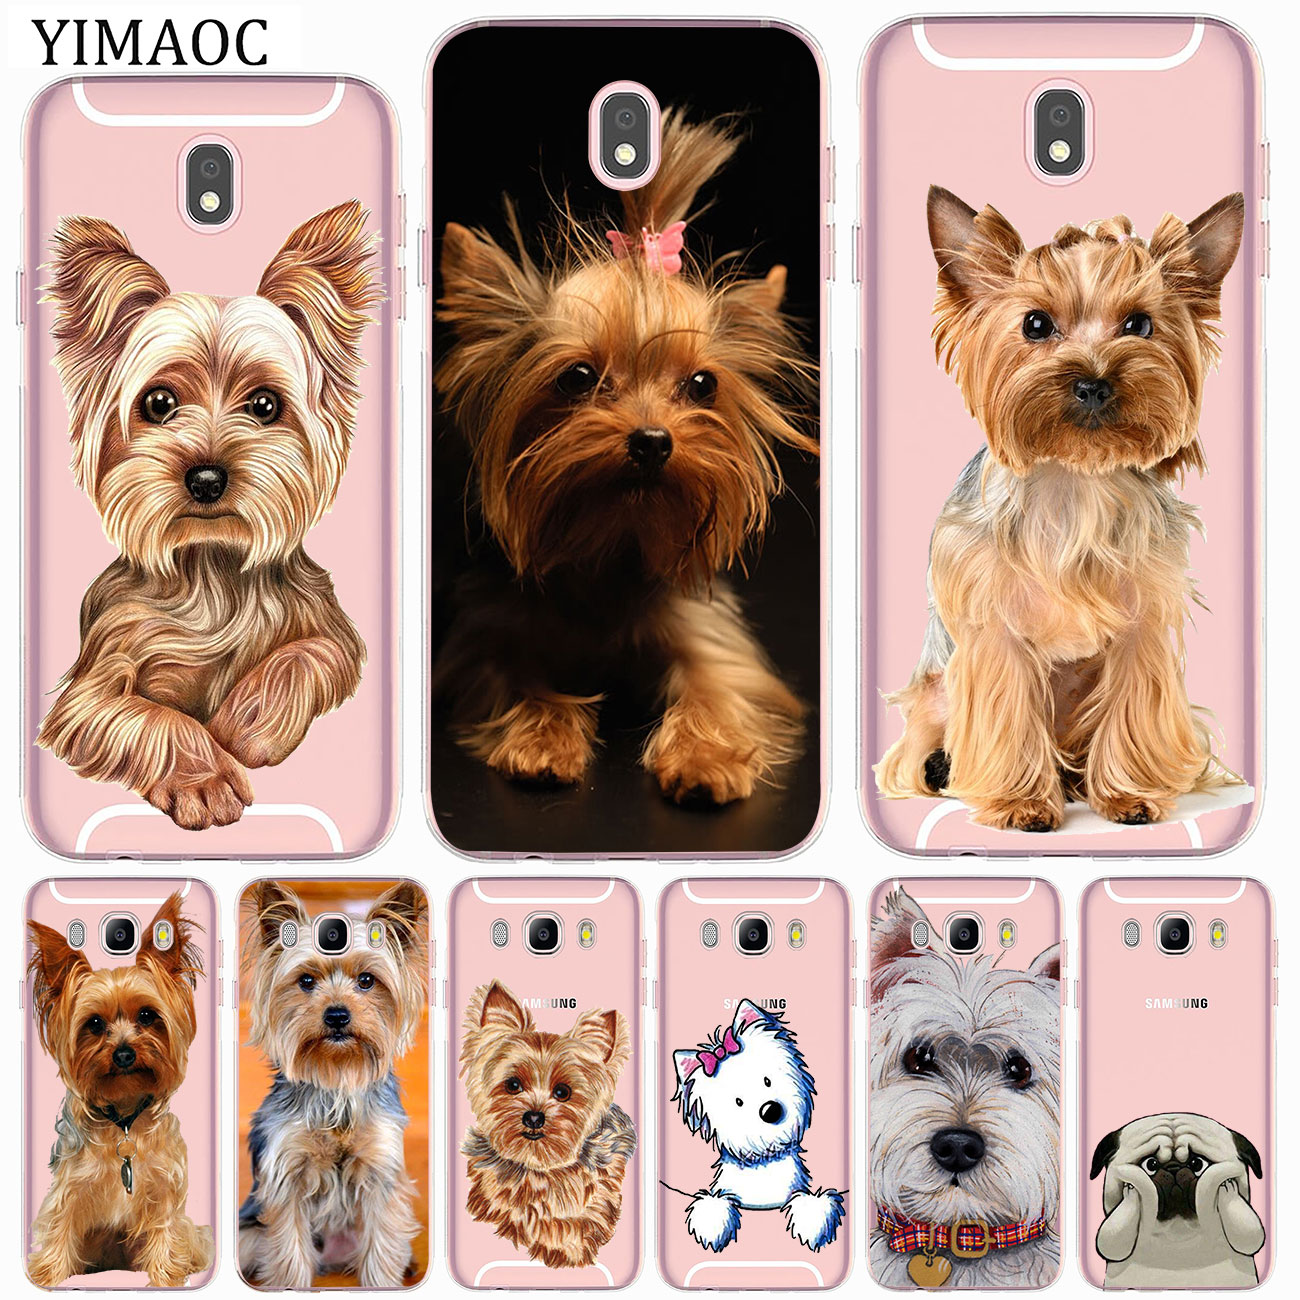 yorkshire terrier <font><b>dog</b></font> puppy Soft <font><b>Case</b></font> for <font><b>Samsung</b></font> Galaxy J8 <font><b>J7</b></font> Duo J6 J5 J4 J3 2017 A2 Core 2016 A5 A9 A8 A7 A6 Plus 2018 image